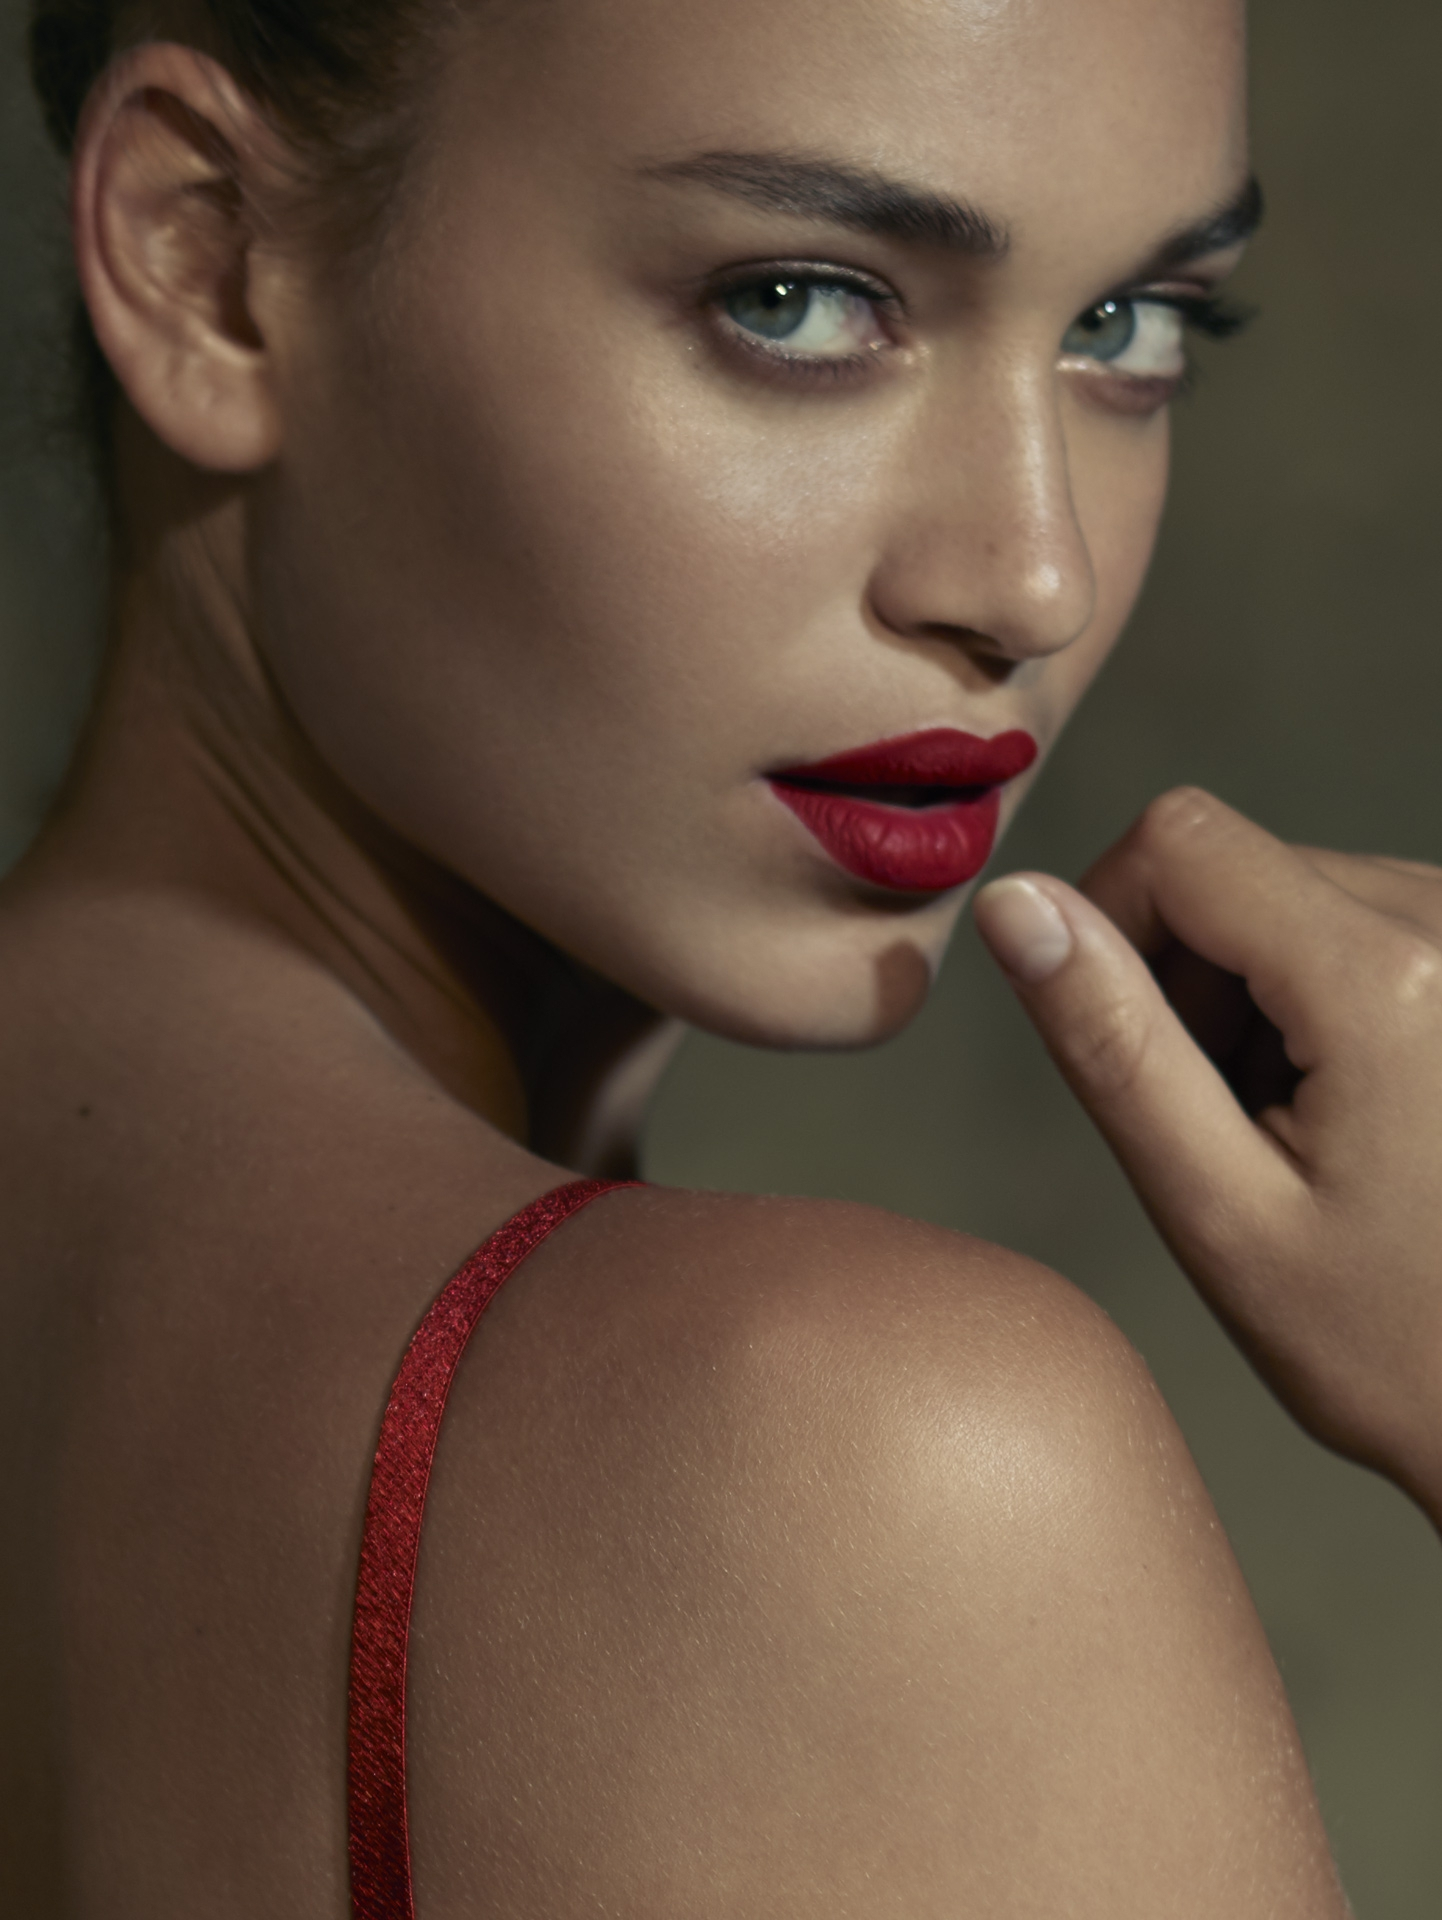 cinema movie light burn red lips beauty cosmetic blue eyes lingerie frederic mercier photographer one color